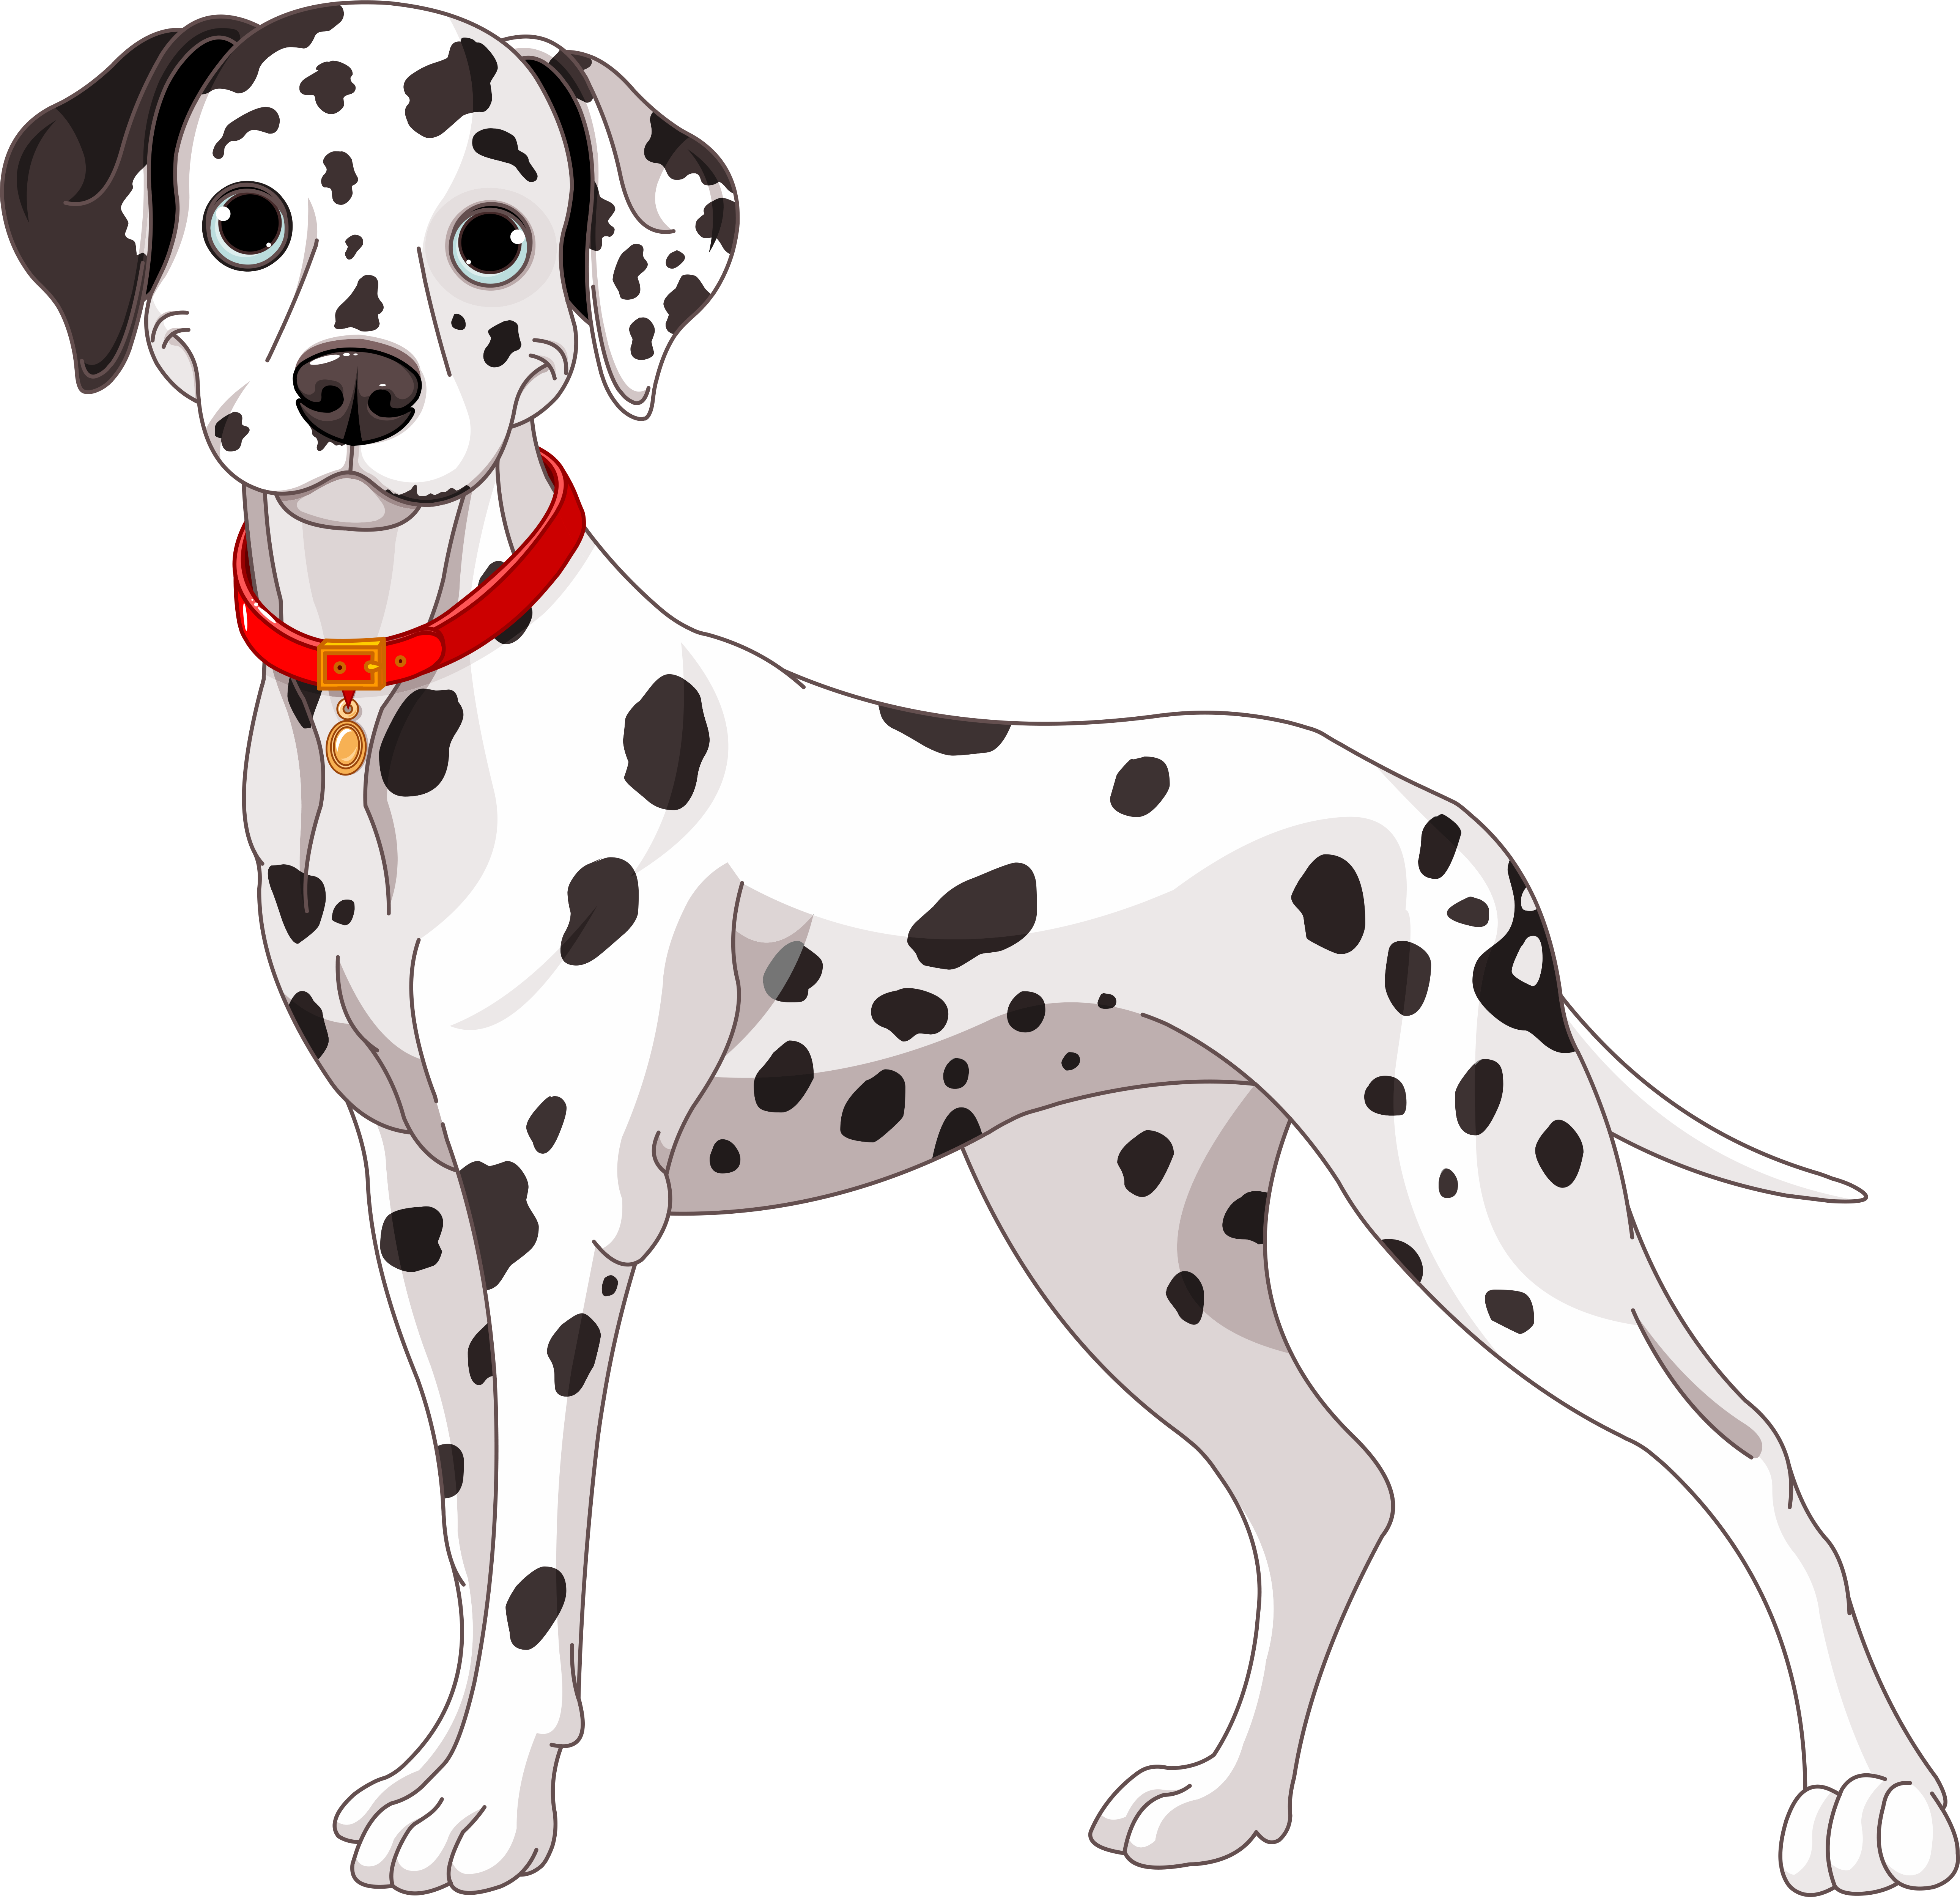 Spotted dog clipart clipart black and white download img-fotki.yandex.ru get 2914 134091466.2ef 0_137312_227f1f8c_orig ... clipart black and white download